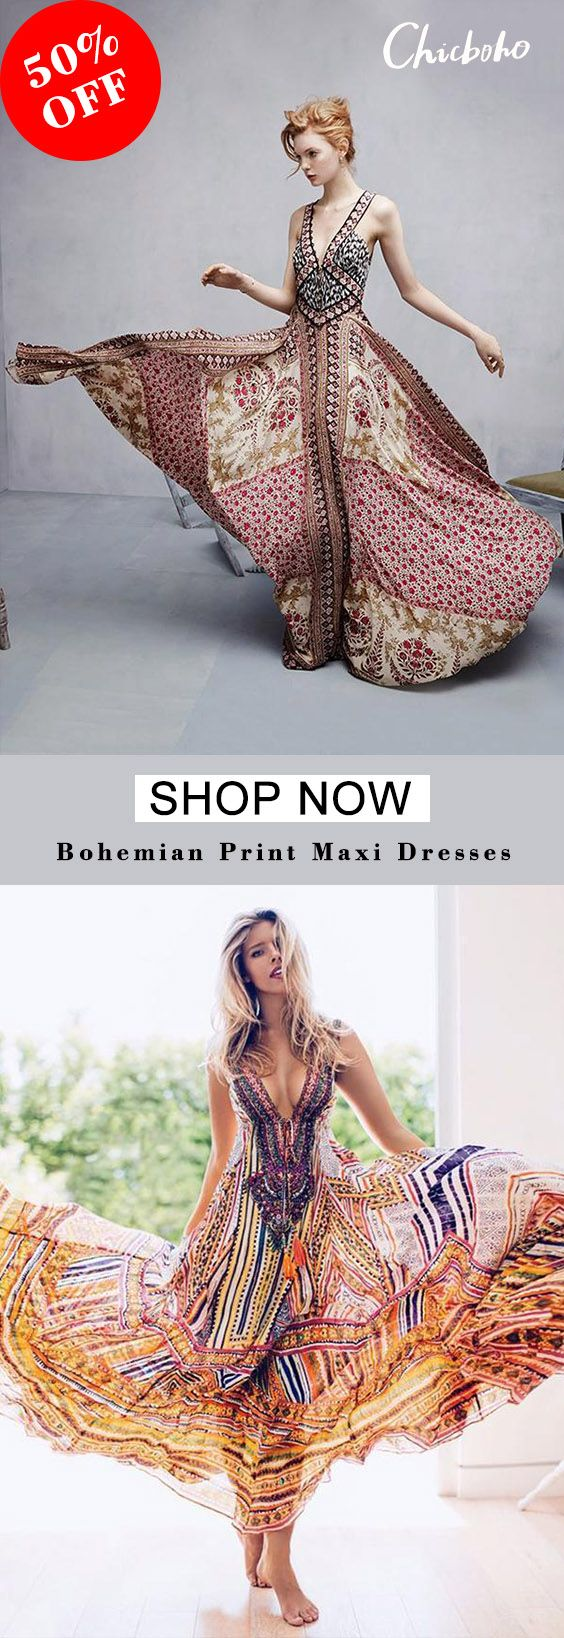 ??50%OFF, new arrival bohemian printing maxi dress. Hight quality and affo... 7